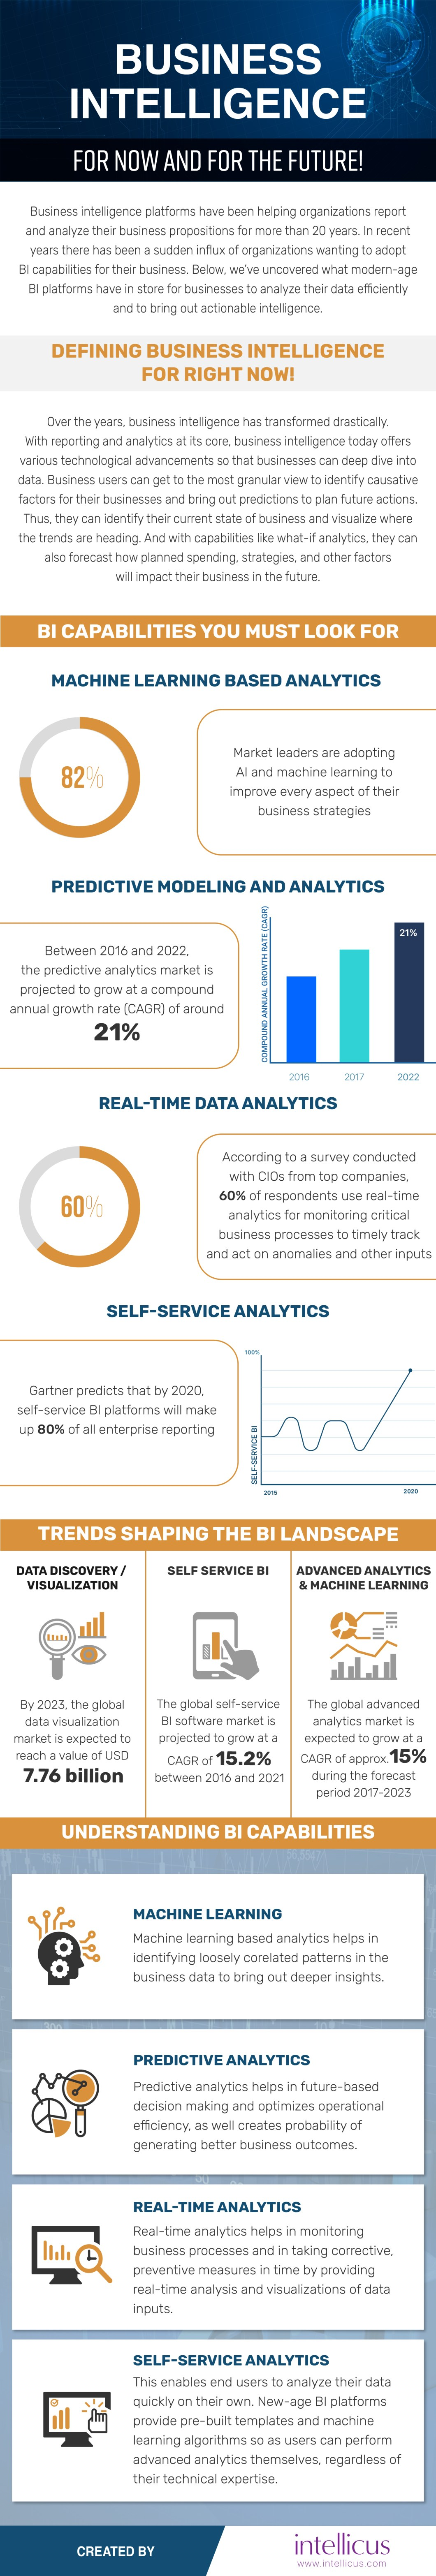 Business Intelligence: Concepts, Components and Capabilities - Infographic